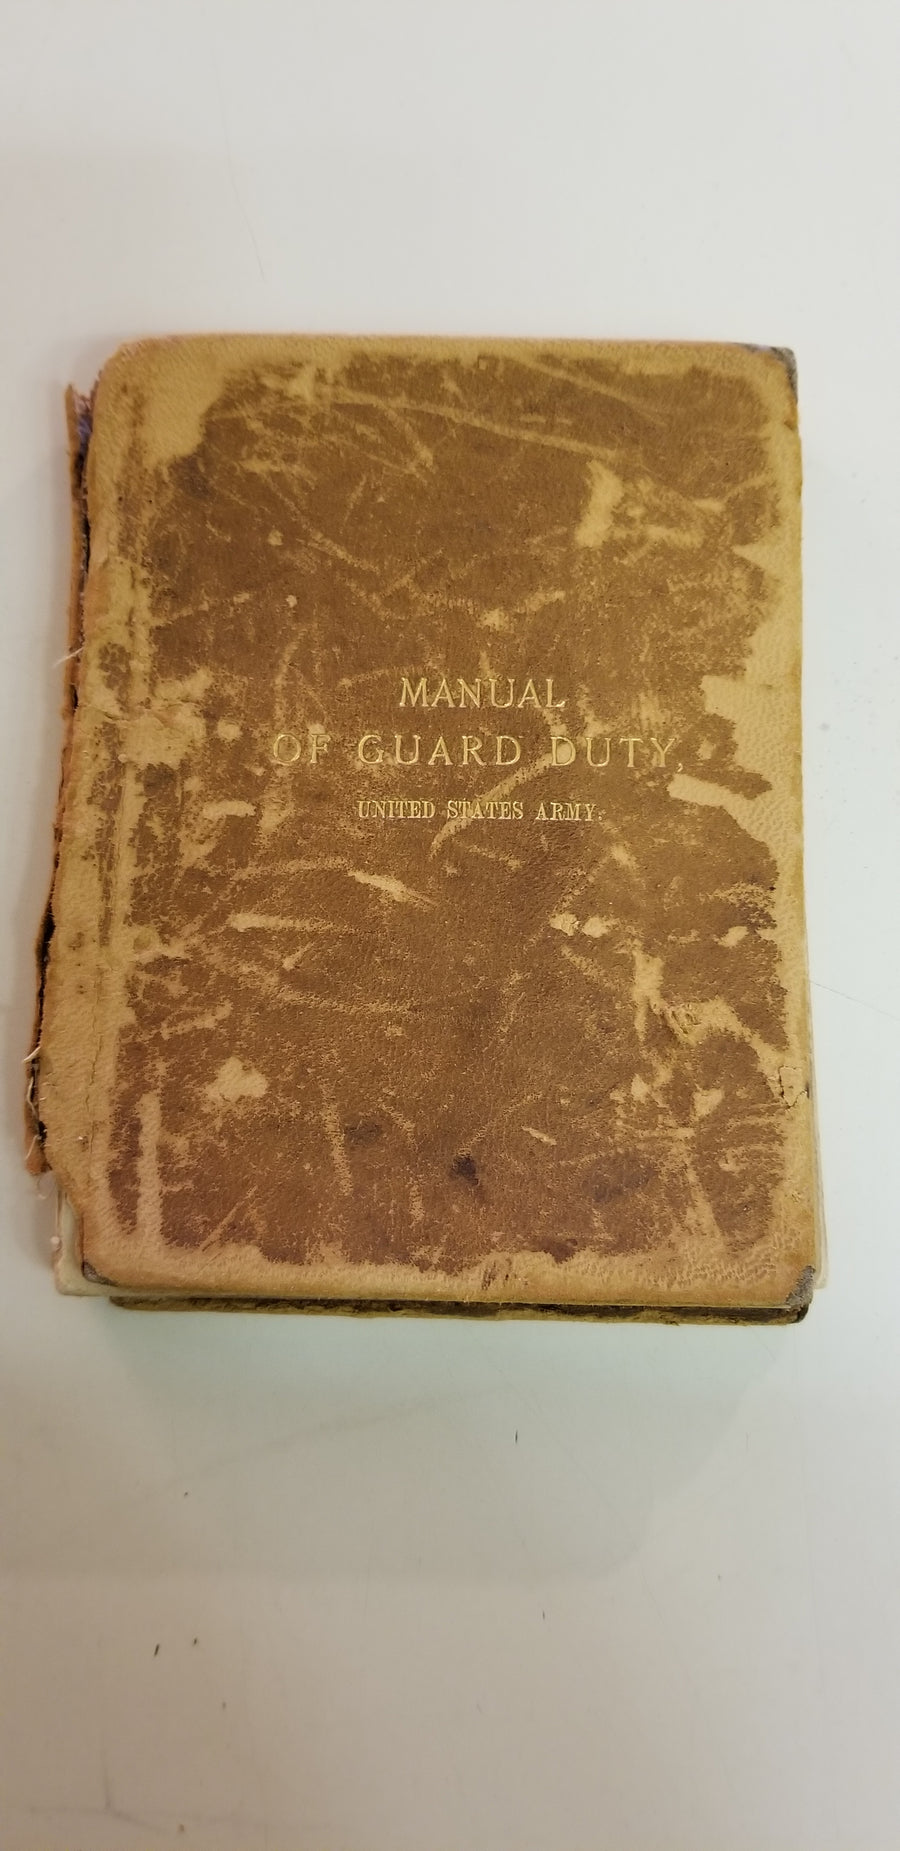 Manual of guard duty, 1893